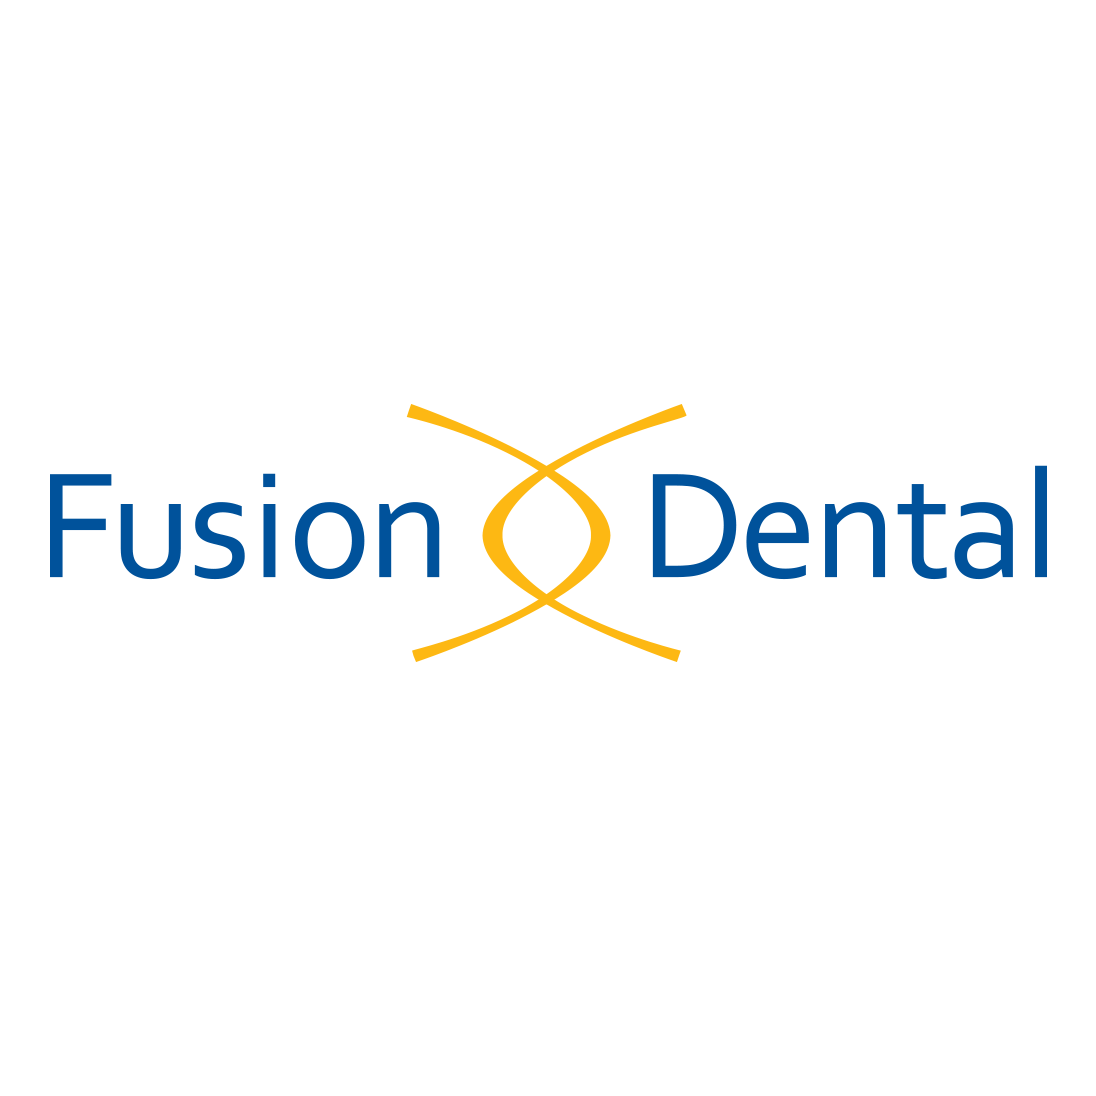 John P. Irey, DDS - Fusion Dental Group